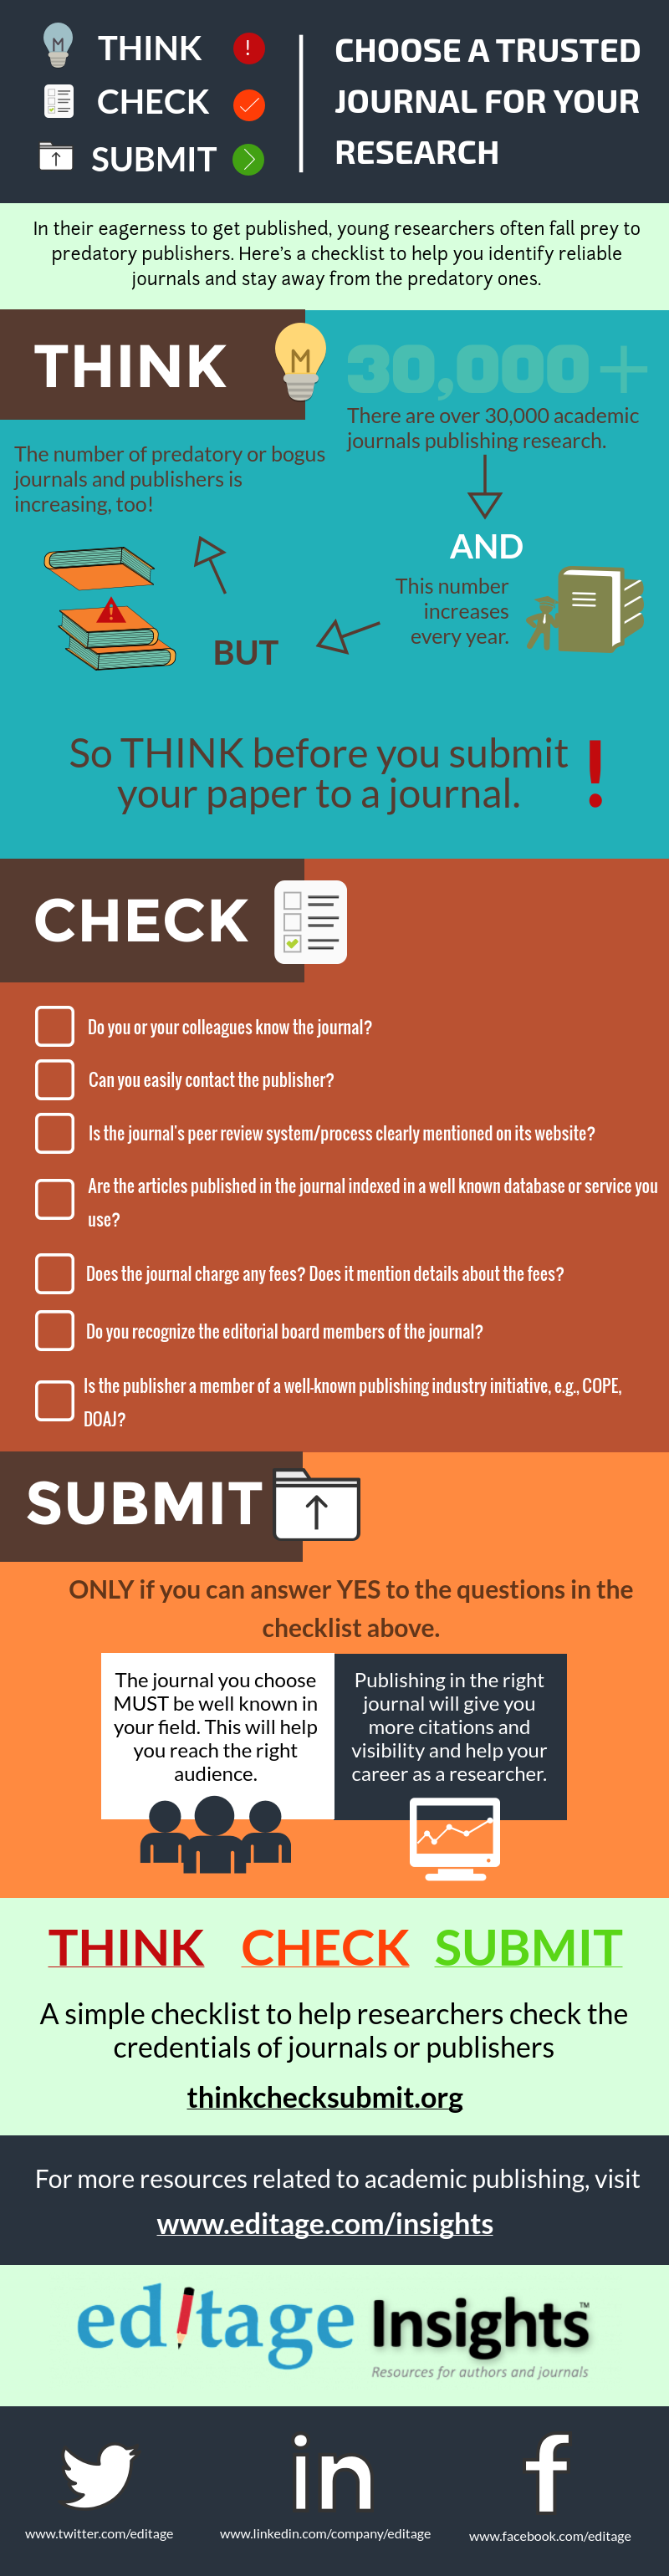 Think Check Submit checklist - Selecting the right journal for your research paper